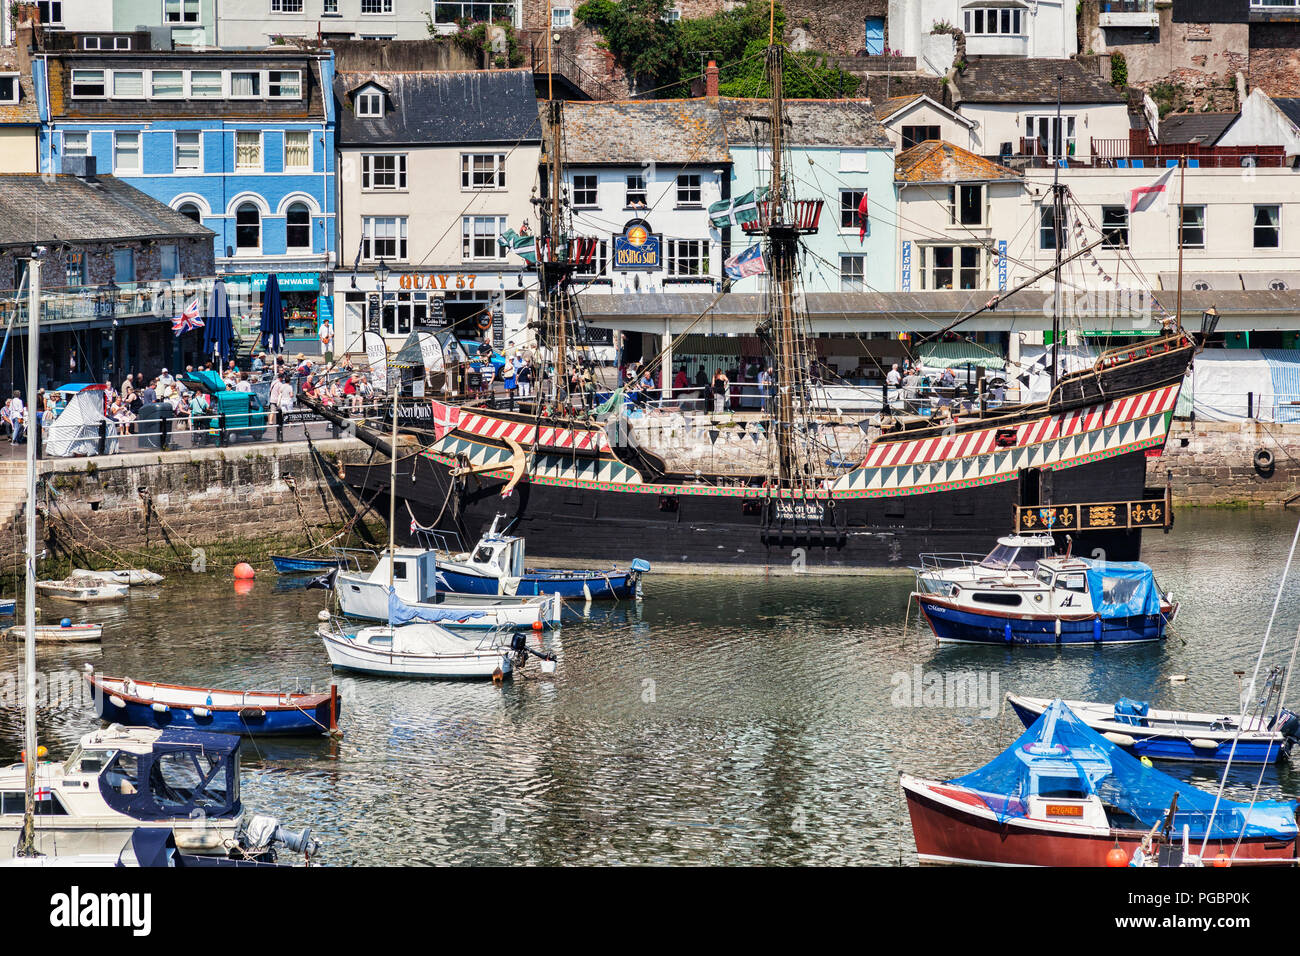 23 May 2018: Brixham, Devon, UK - The harbour with the replica Golden Hind on a fine spring day. Stock Photo